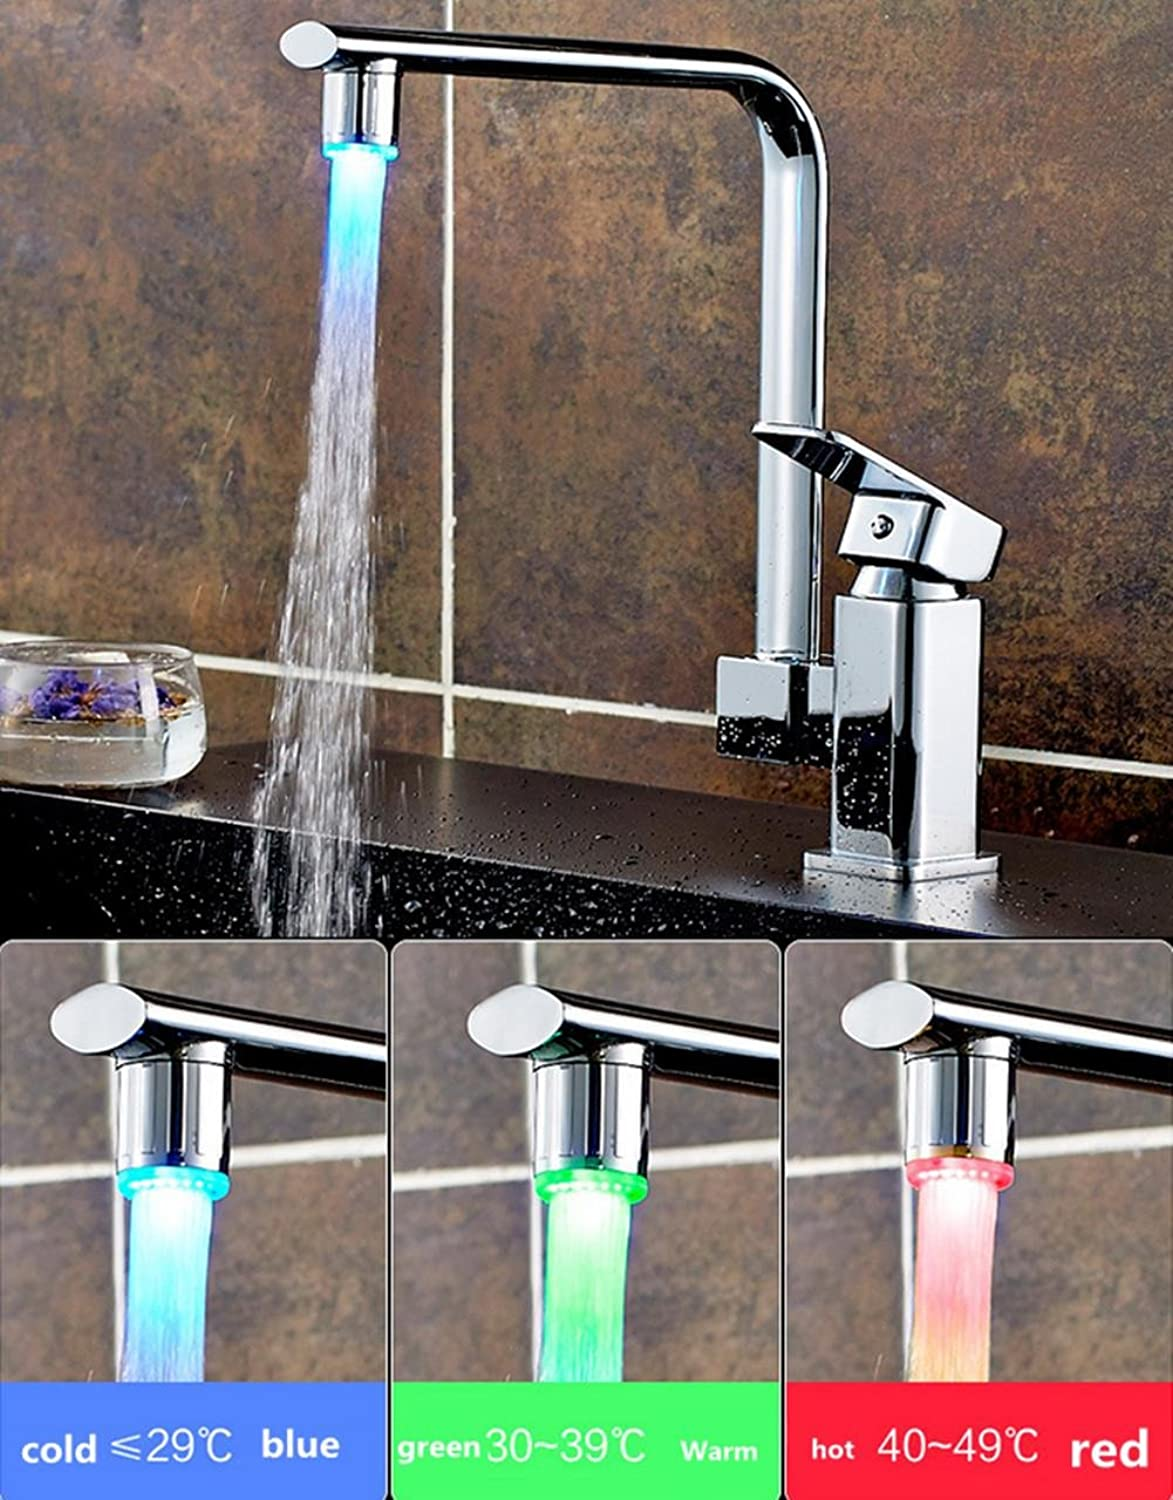 LED Temperature Control Luminous Faucet 360 Degree redation Hot and Cold Water Kitchen Faucet